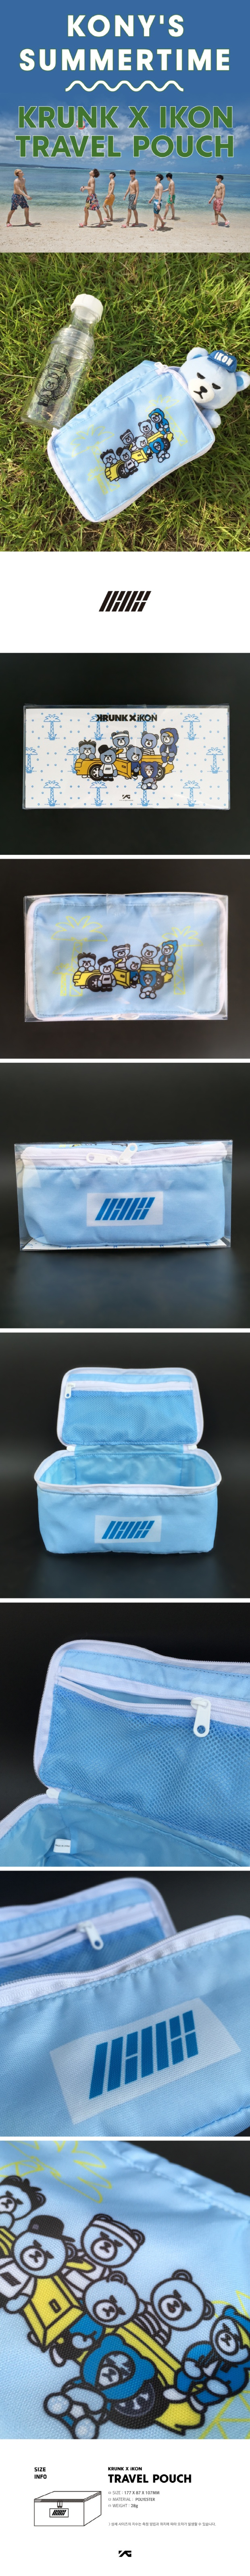 02_ikon_summertime_pouch_01